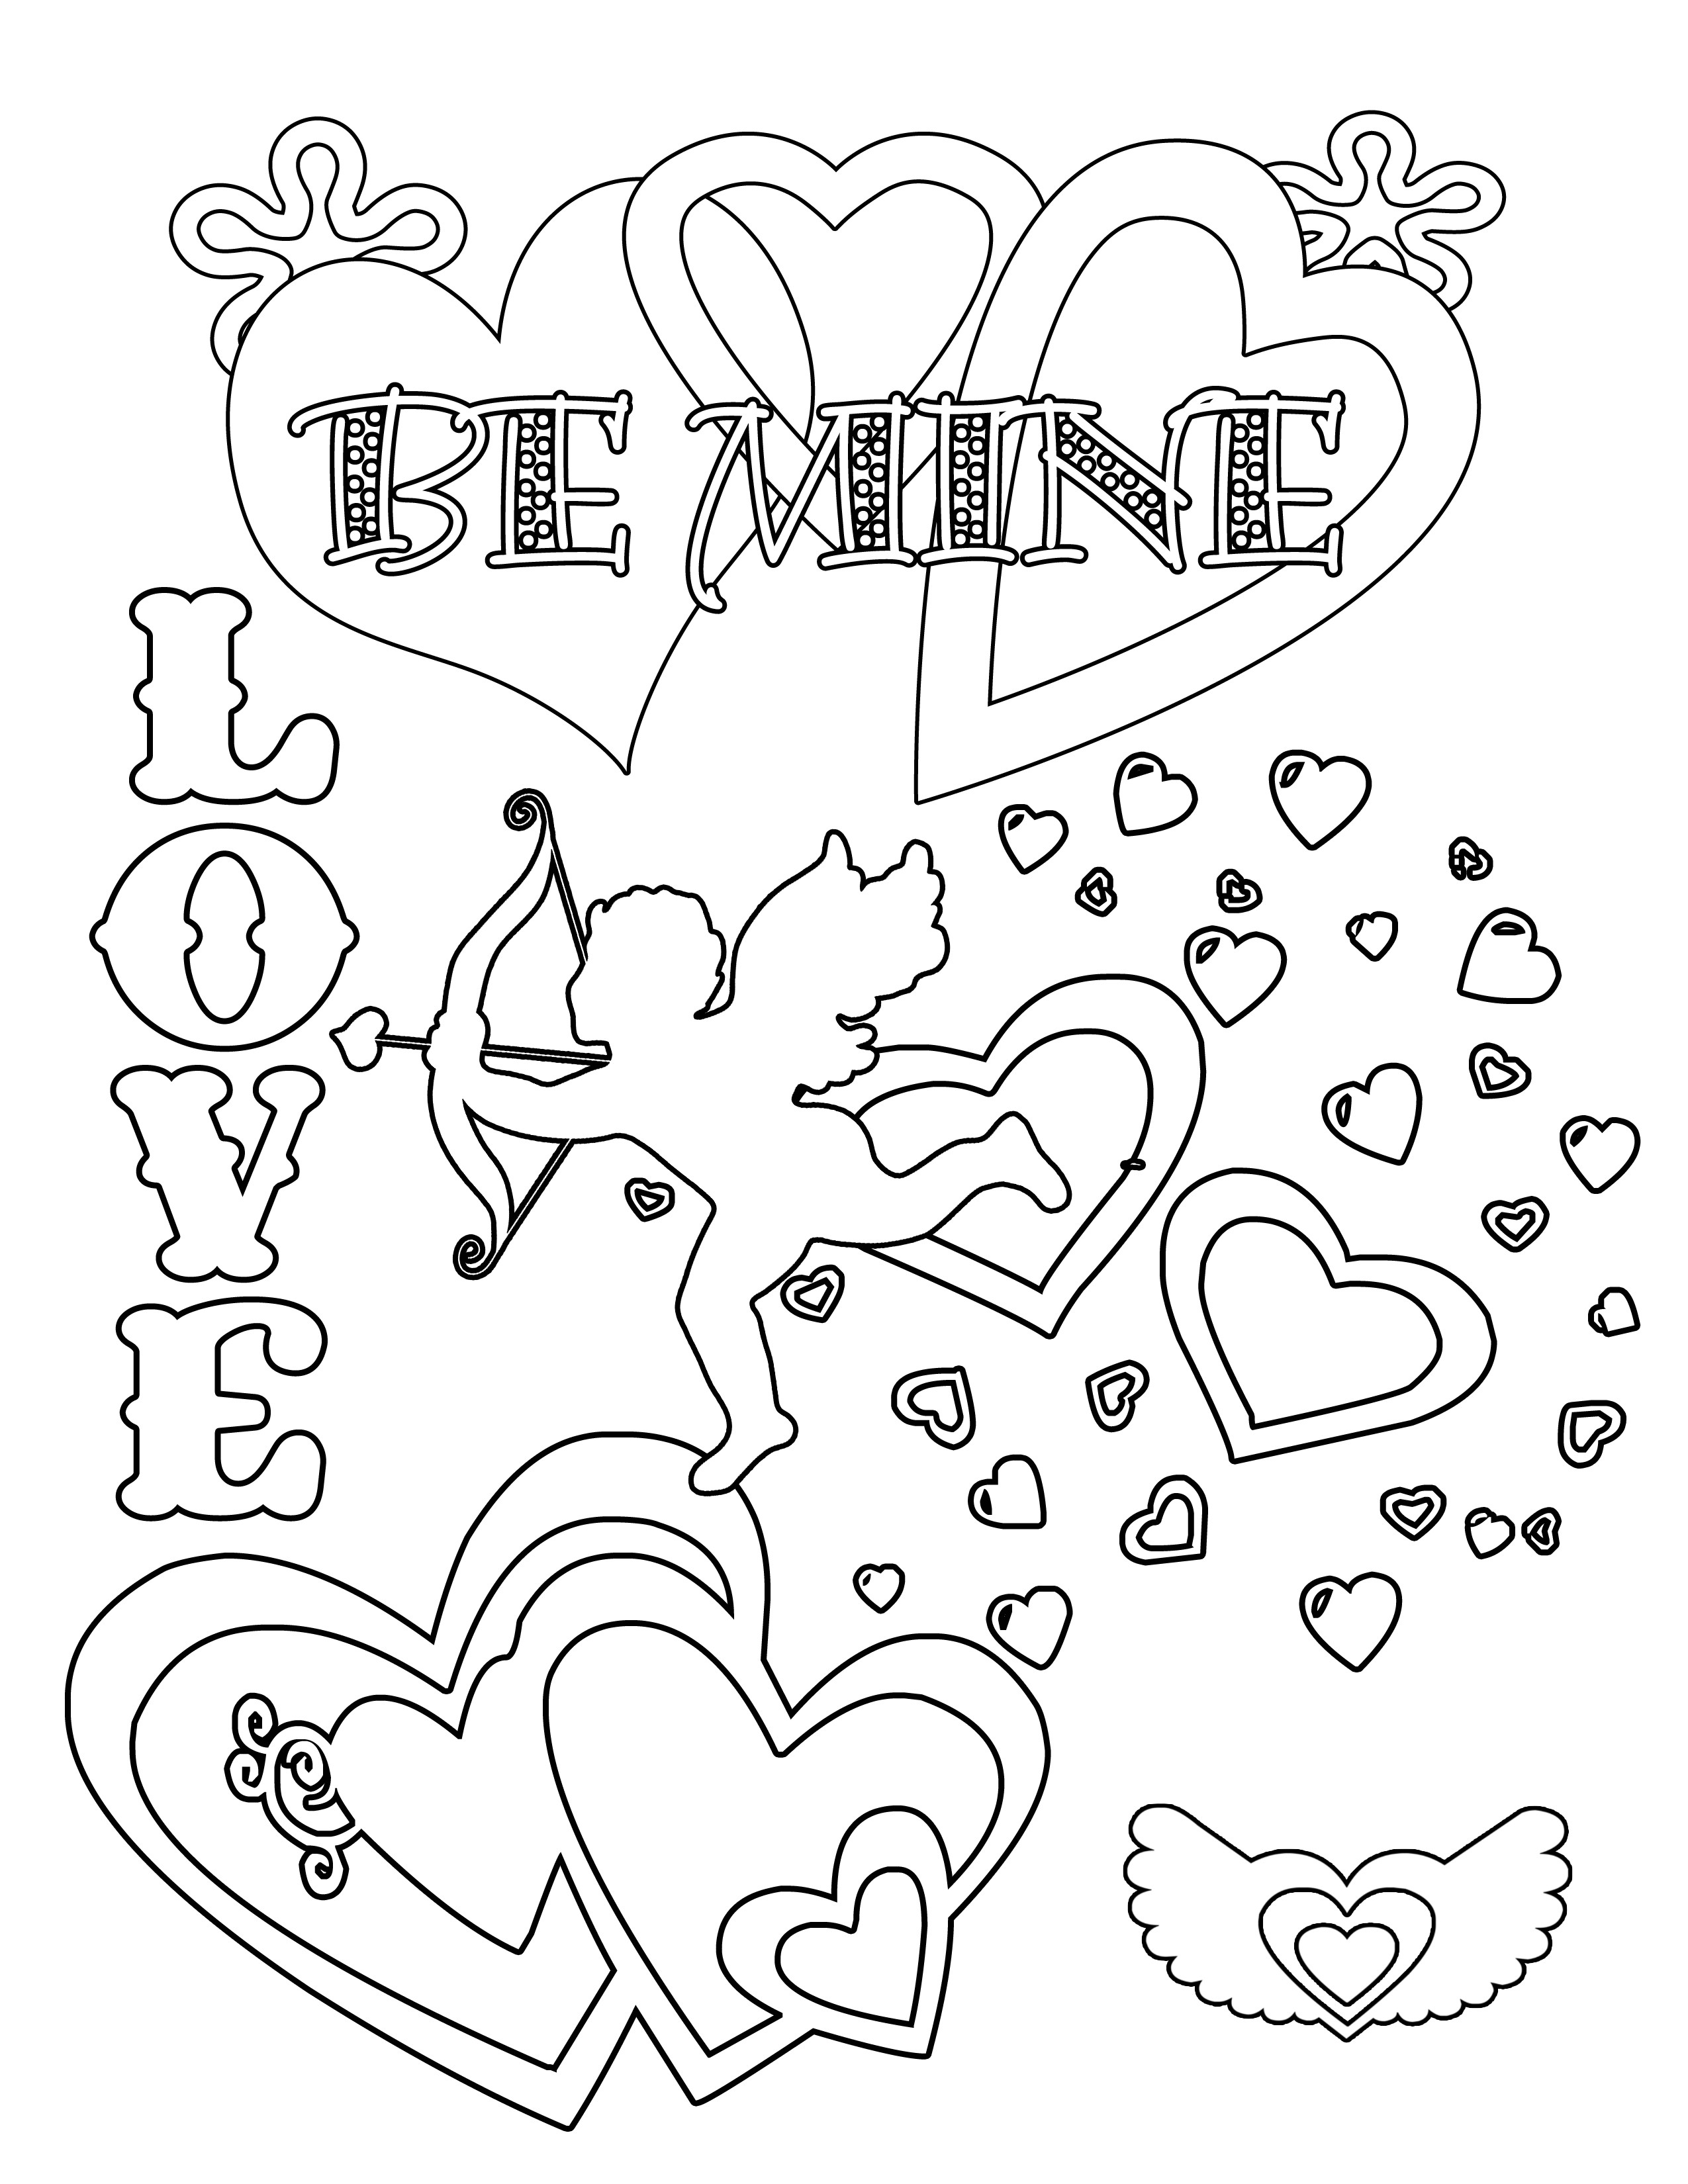 Valentine Coloring Sheets Free  Valentine Coloring Pages Best Coloring Pages For Kids